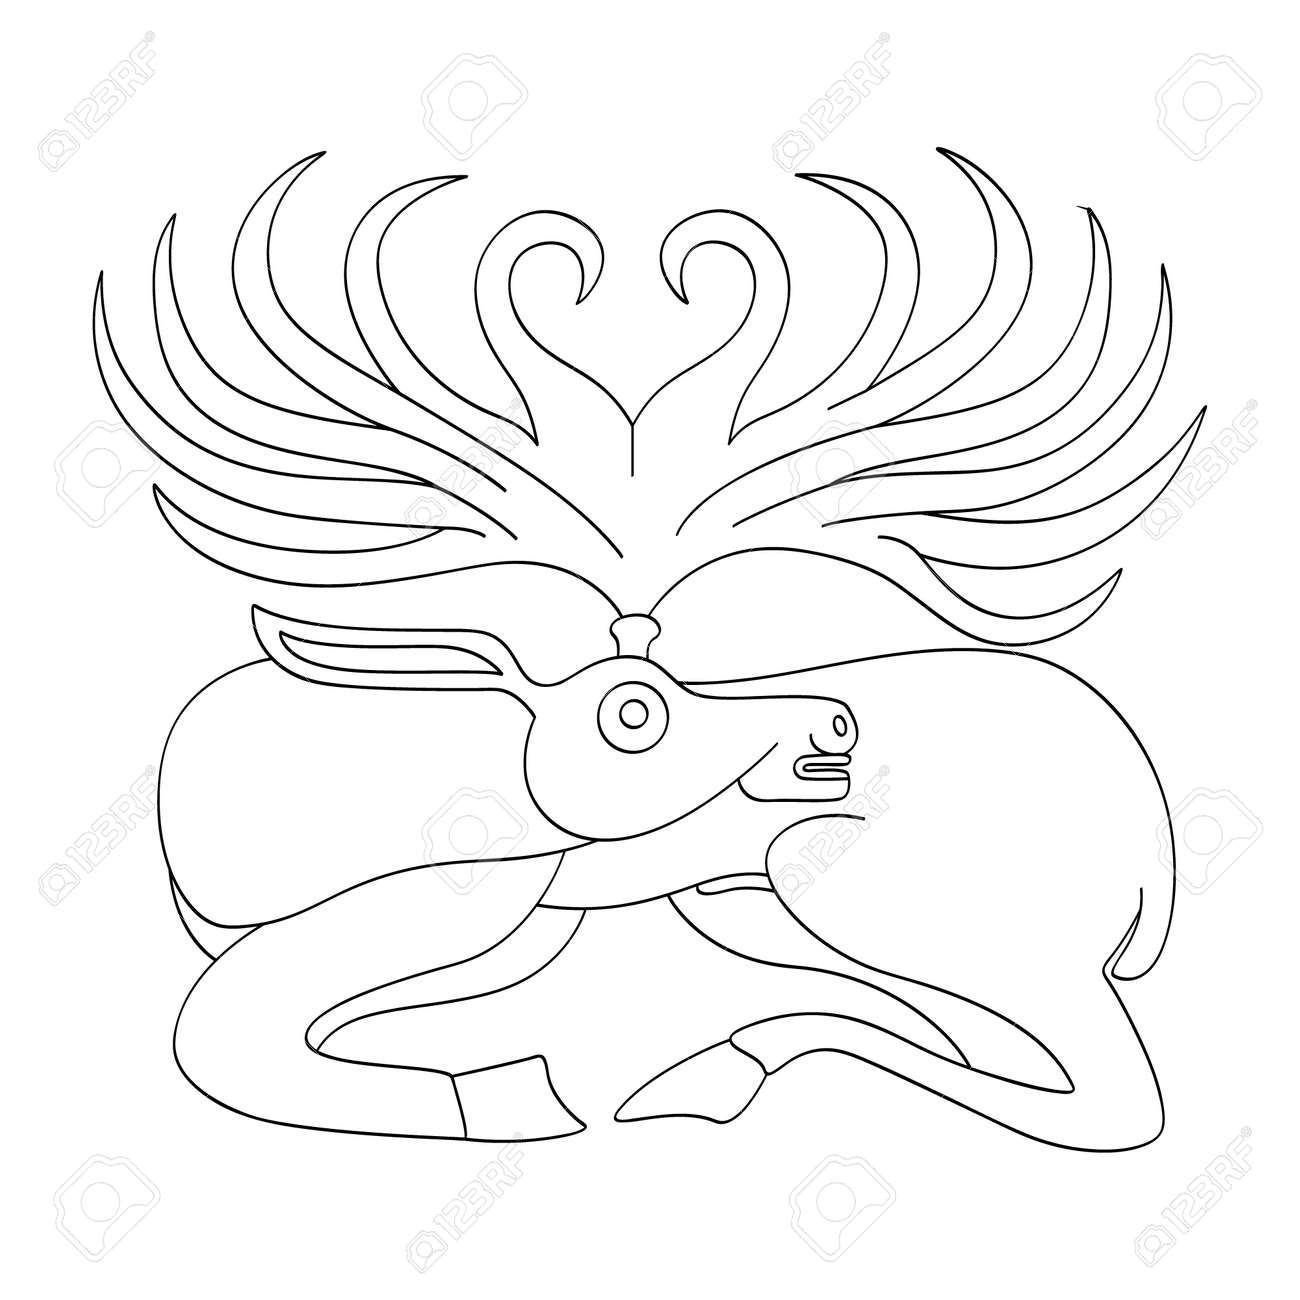 vector monochrome icon with ancient Scythian art. Plaque with animal motifs for your project - 164658283